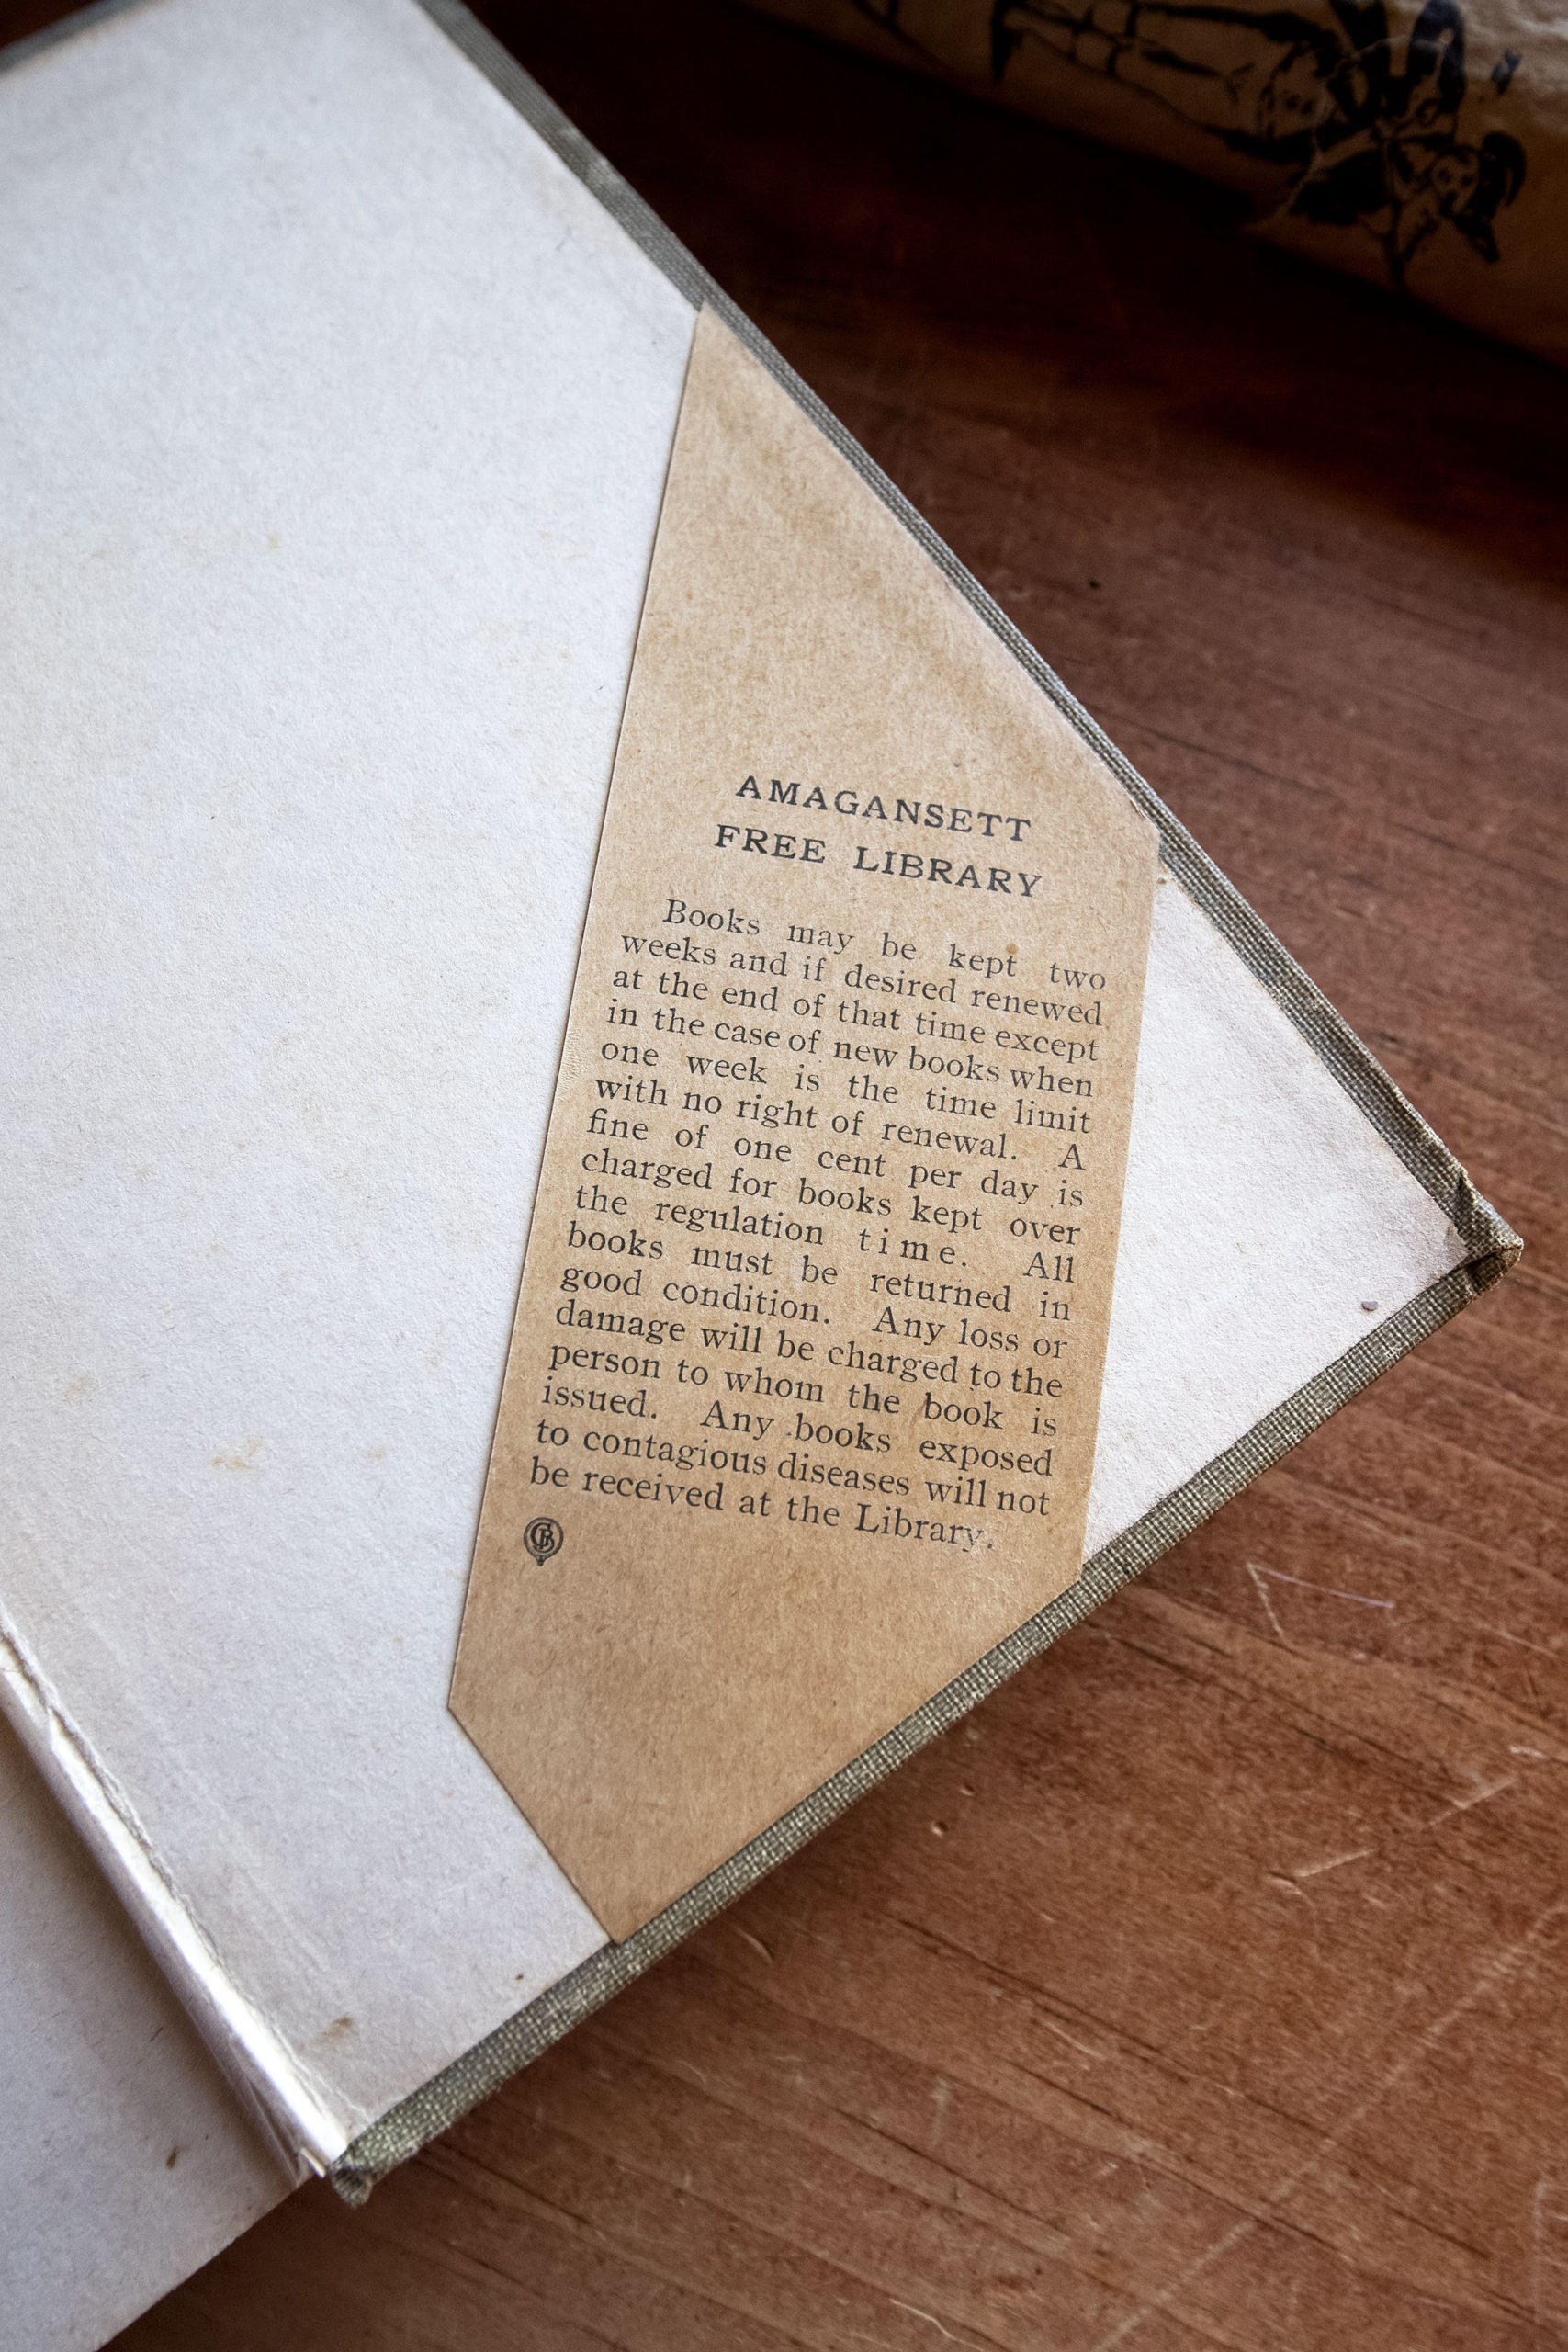 The library policy that was in place when the book was last in the library's collection.